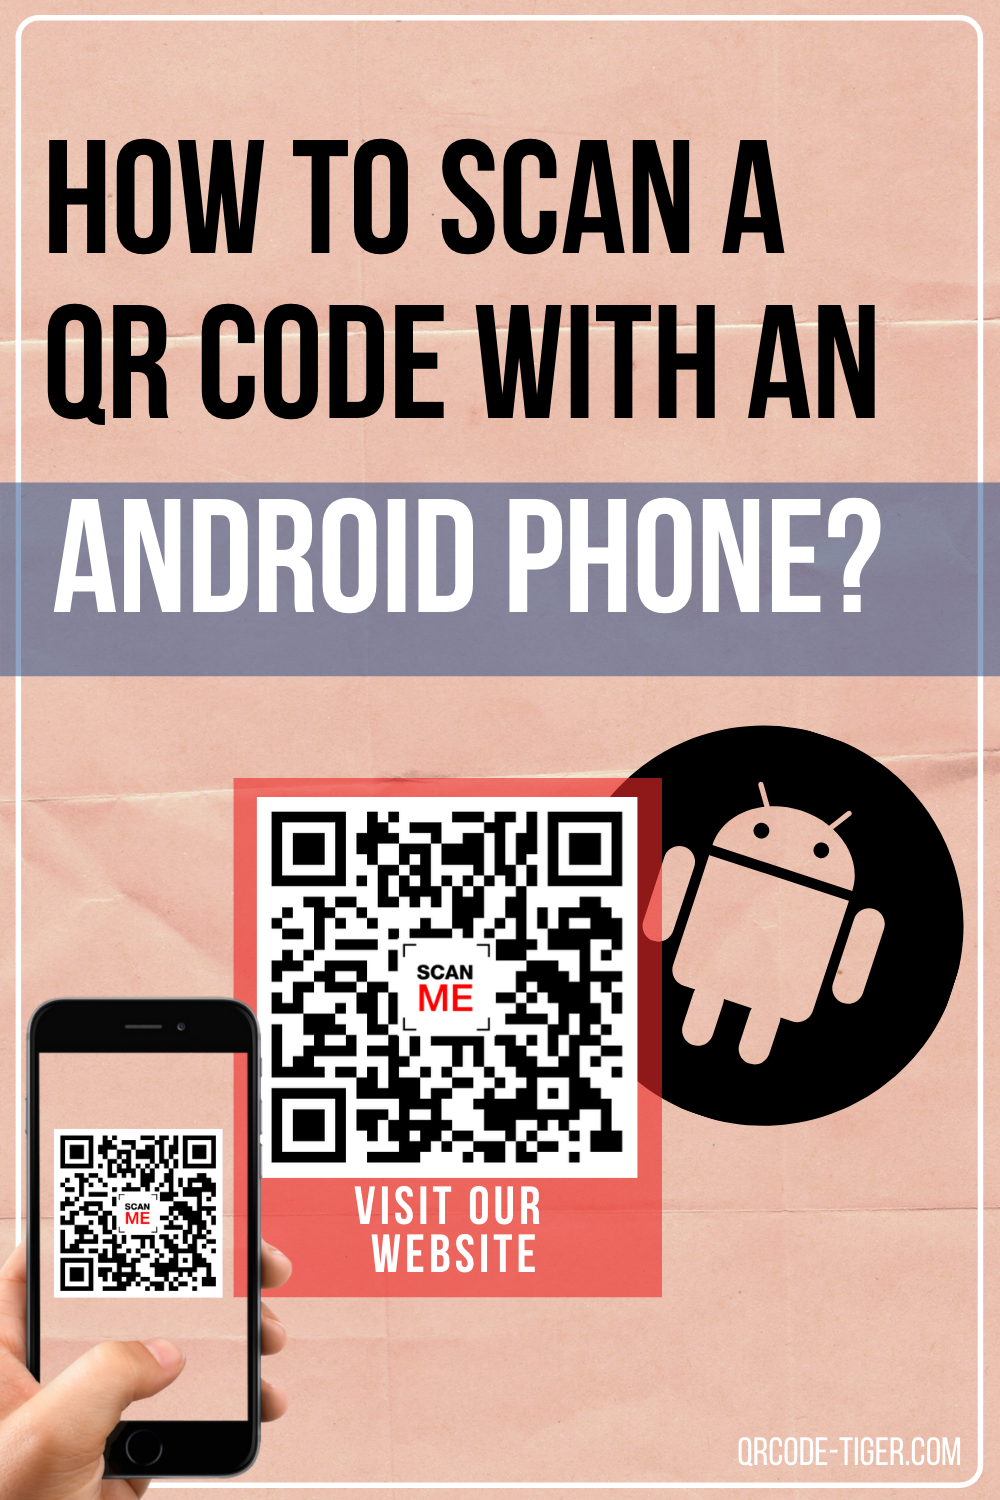 How To Scan Qr Code With Android Android Qr Code Scanner Smartphones With Qr Codes Diy Tech Coding Qr Code Scanner Qr Code